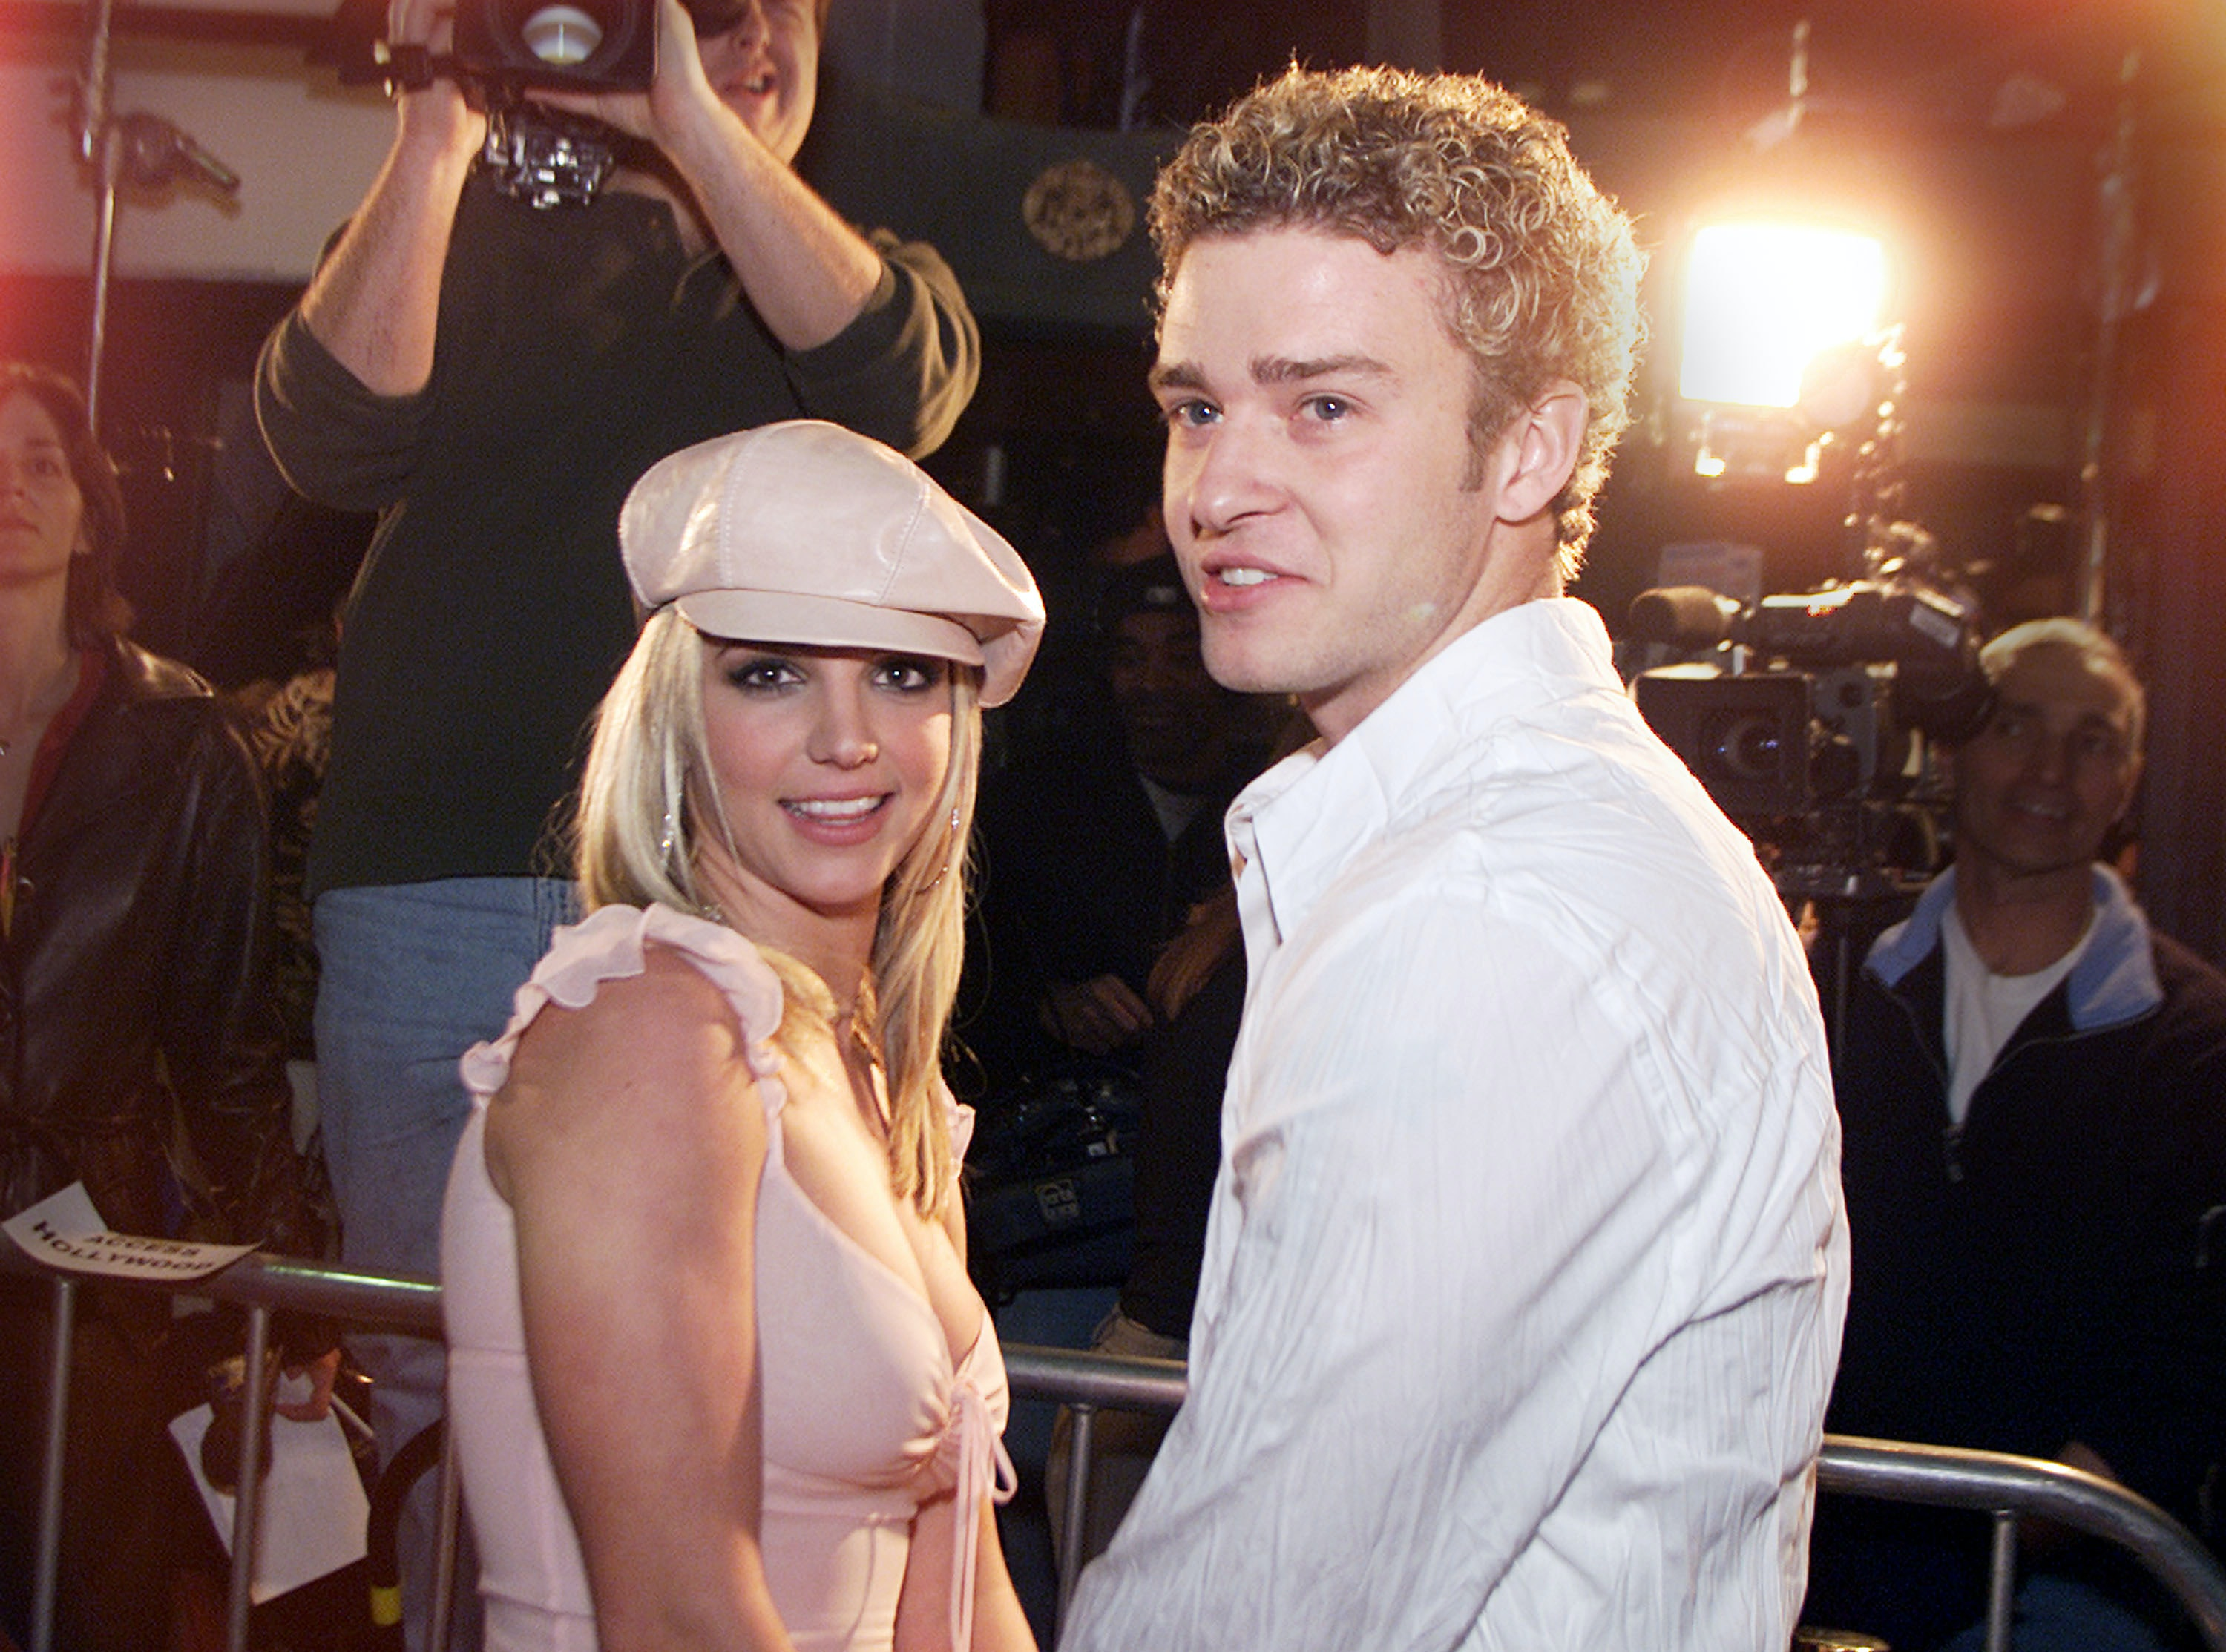 Britney spears and justin timberlake sex tape video